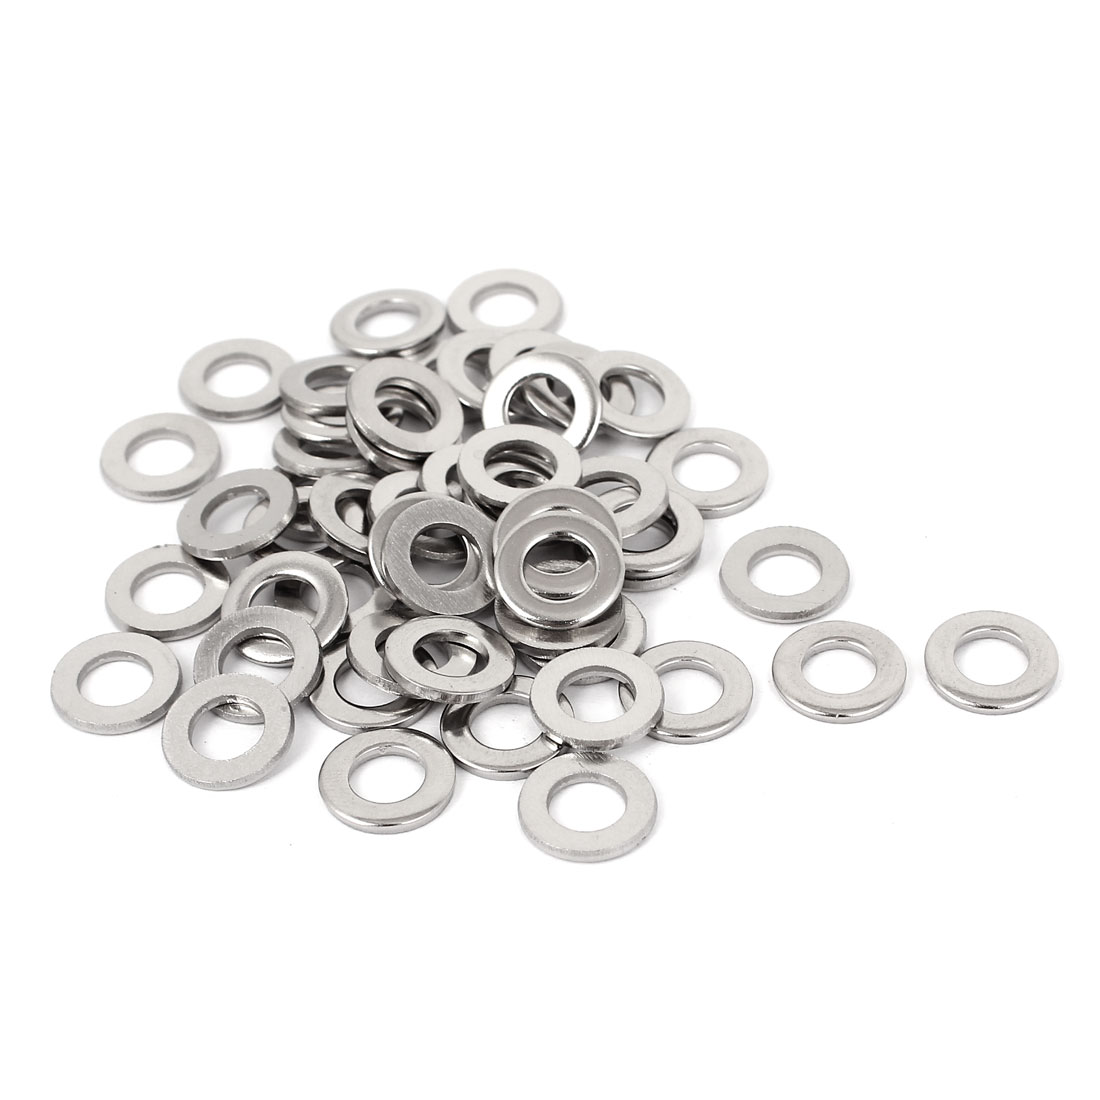 "50pcs Silver Tone 316 Stainless Steel Flat Washer 1/4"" for Screws Bolts"